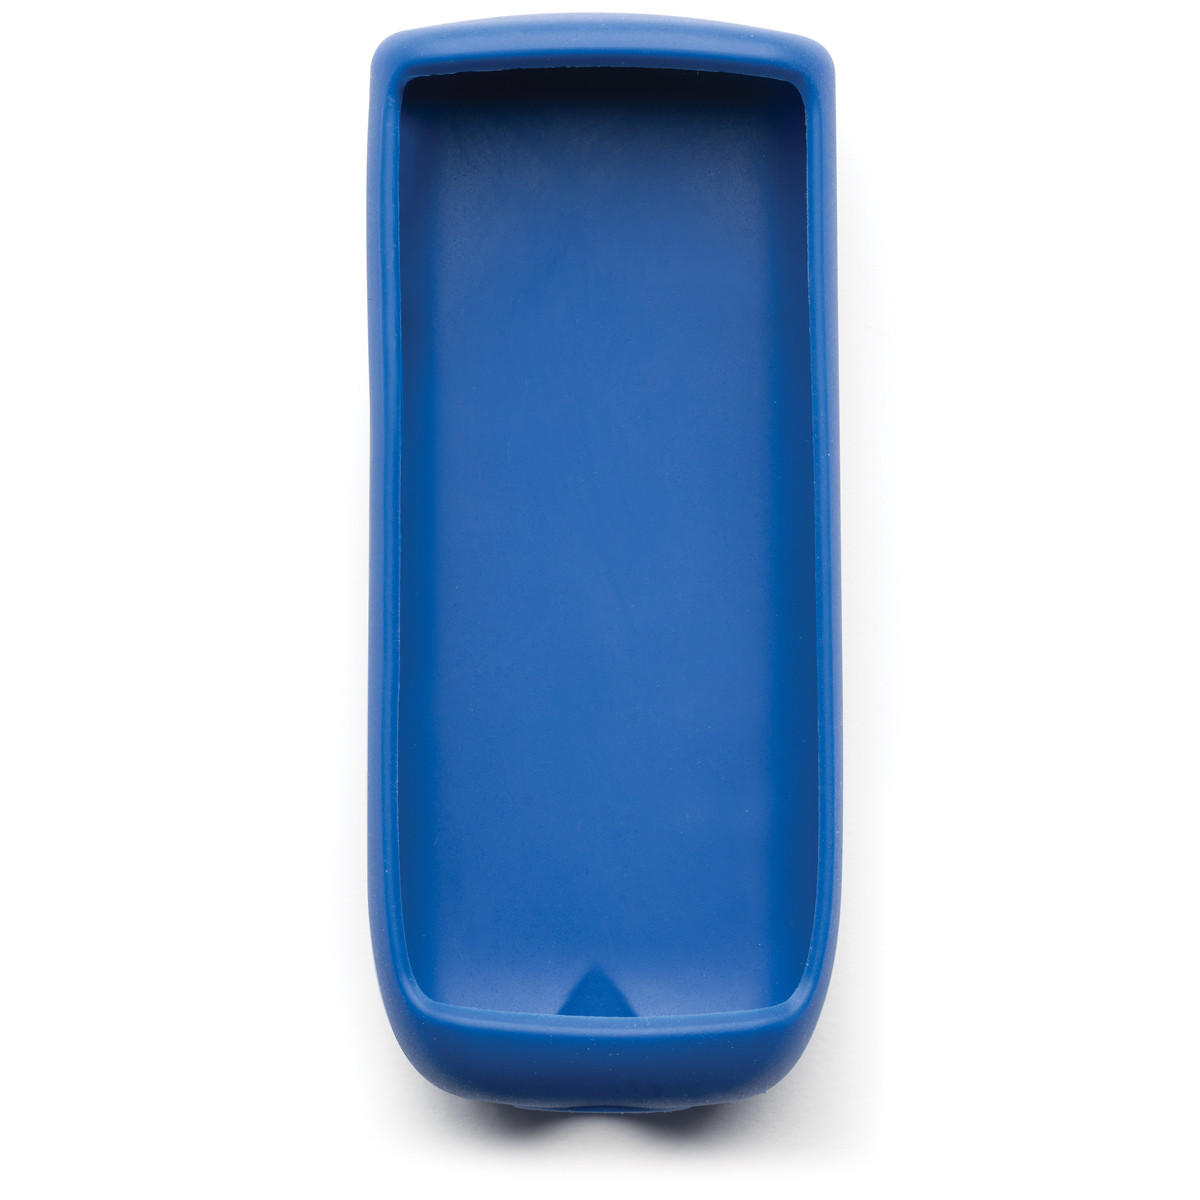 Blue Shockproof Rubber Boot